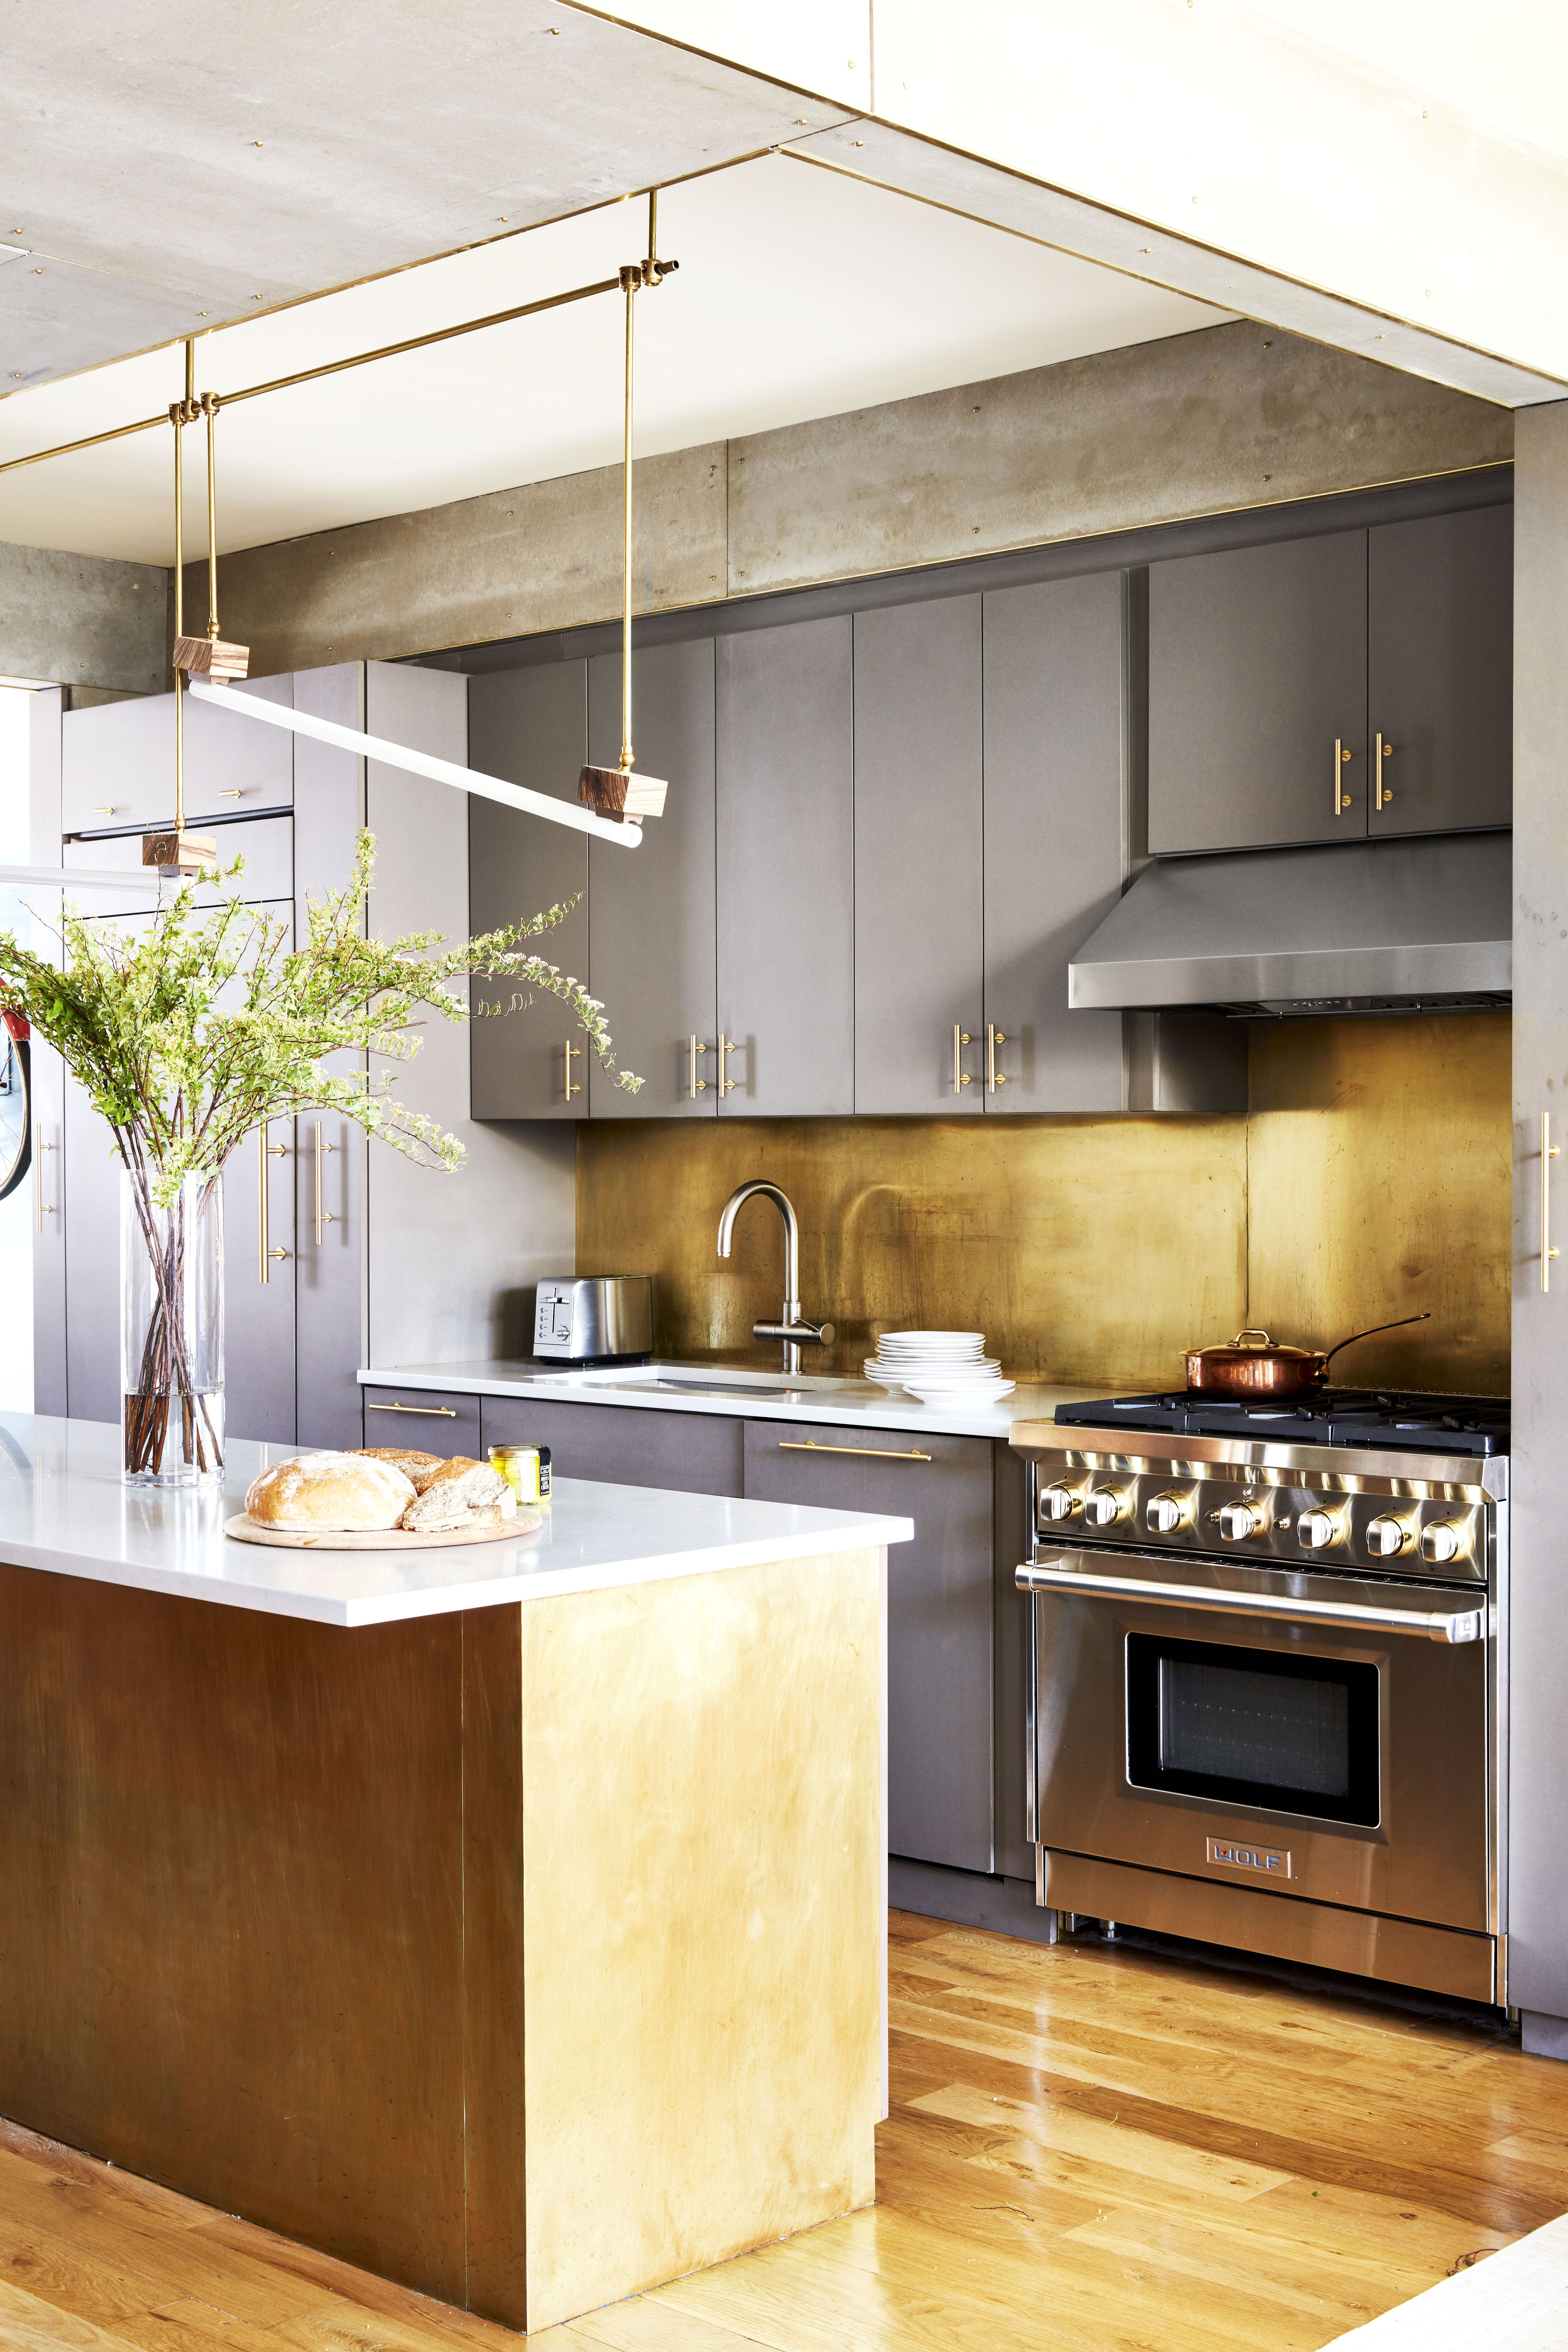 This Kitchen Isn't Just Pretty—It's Practically Indestructible